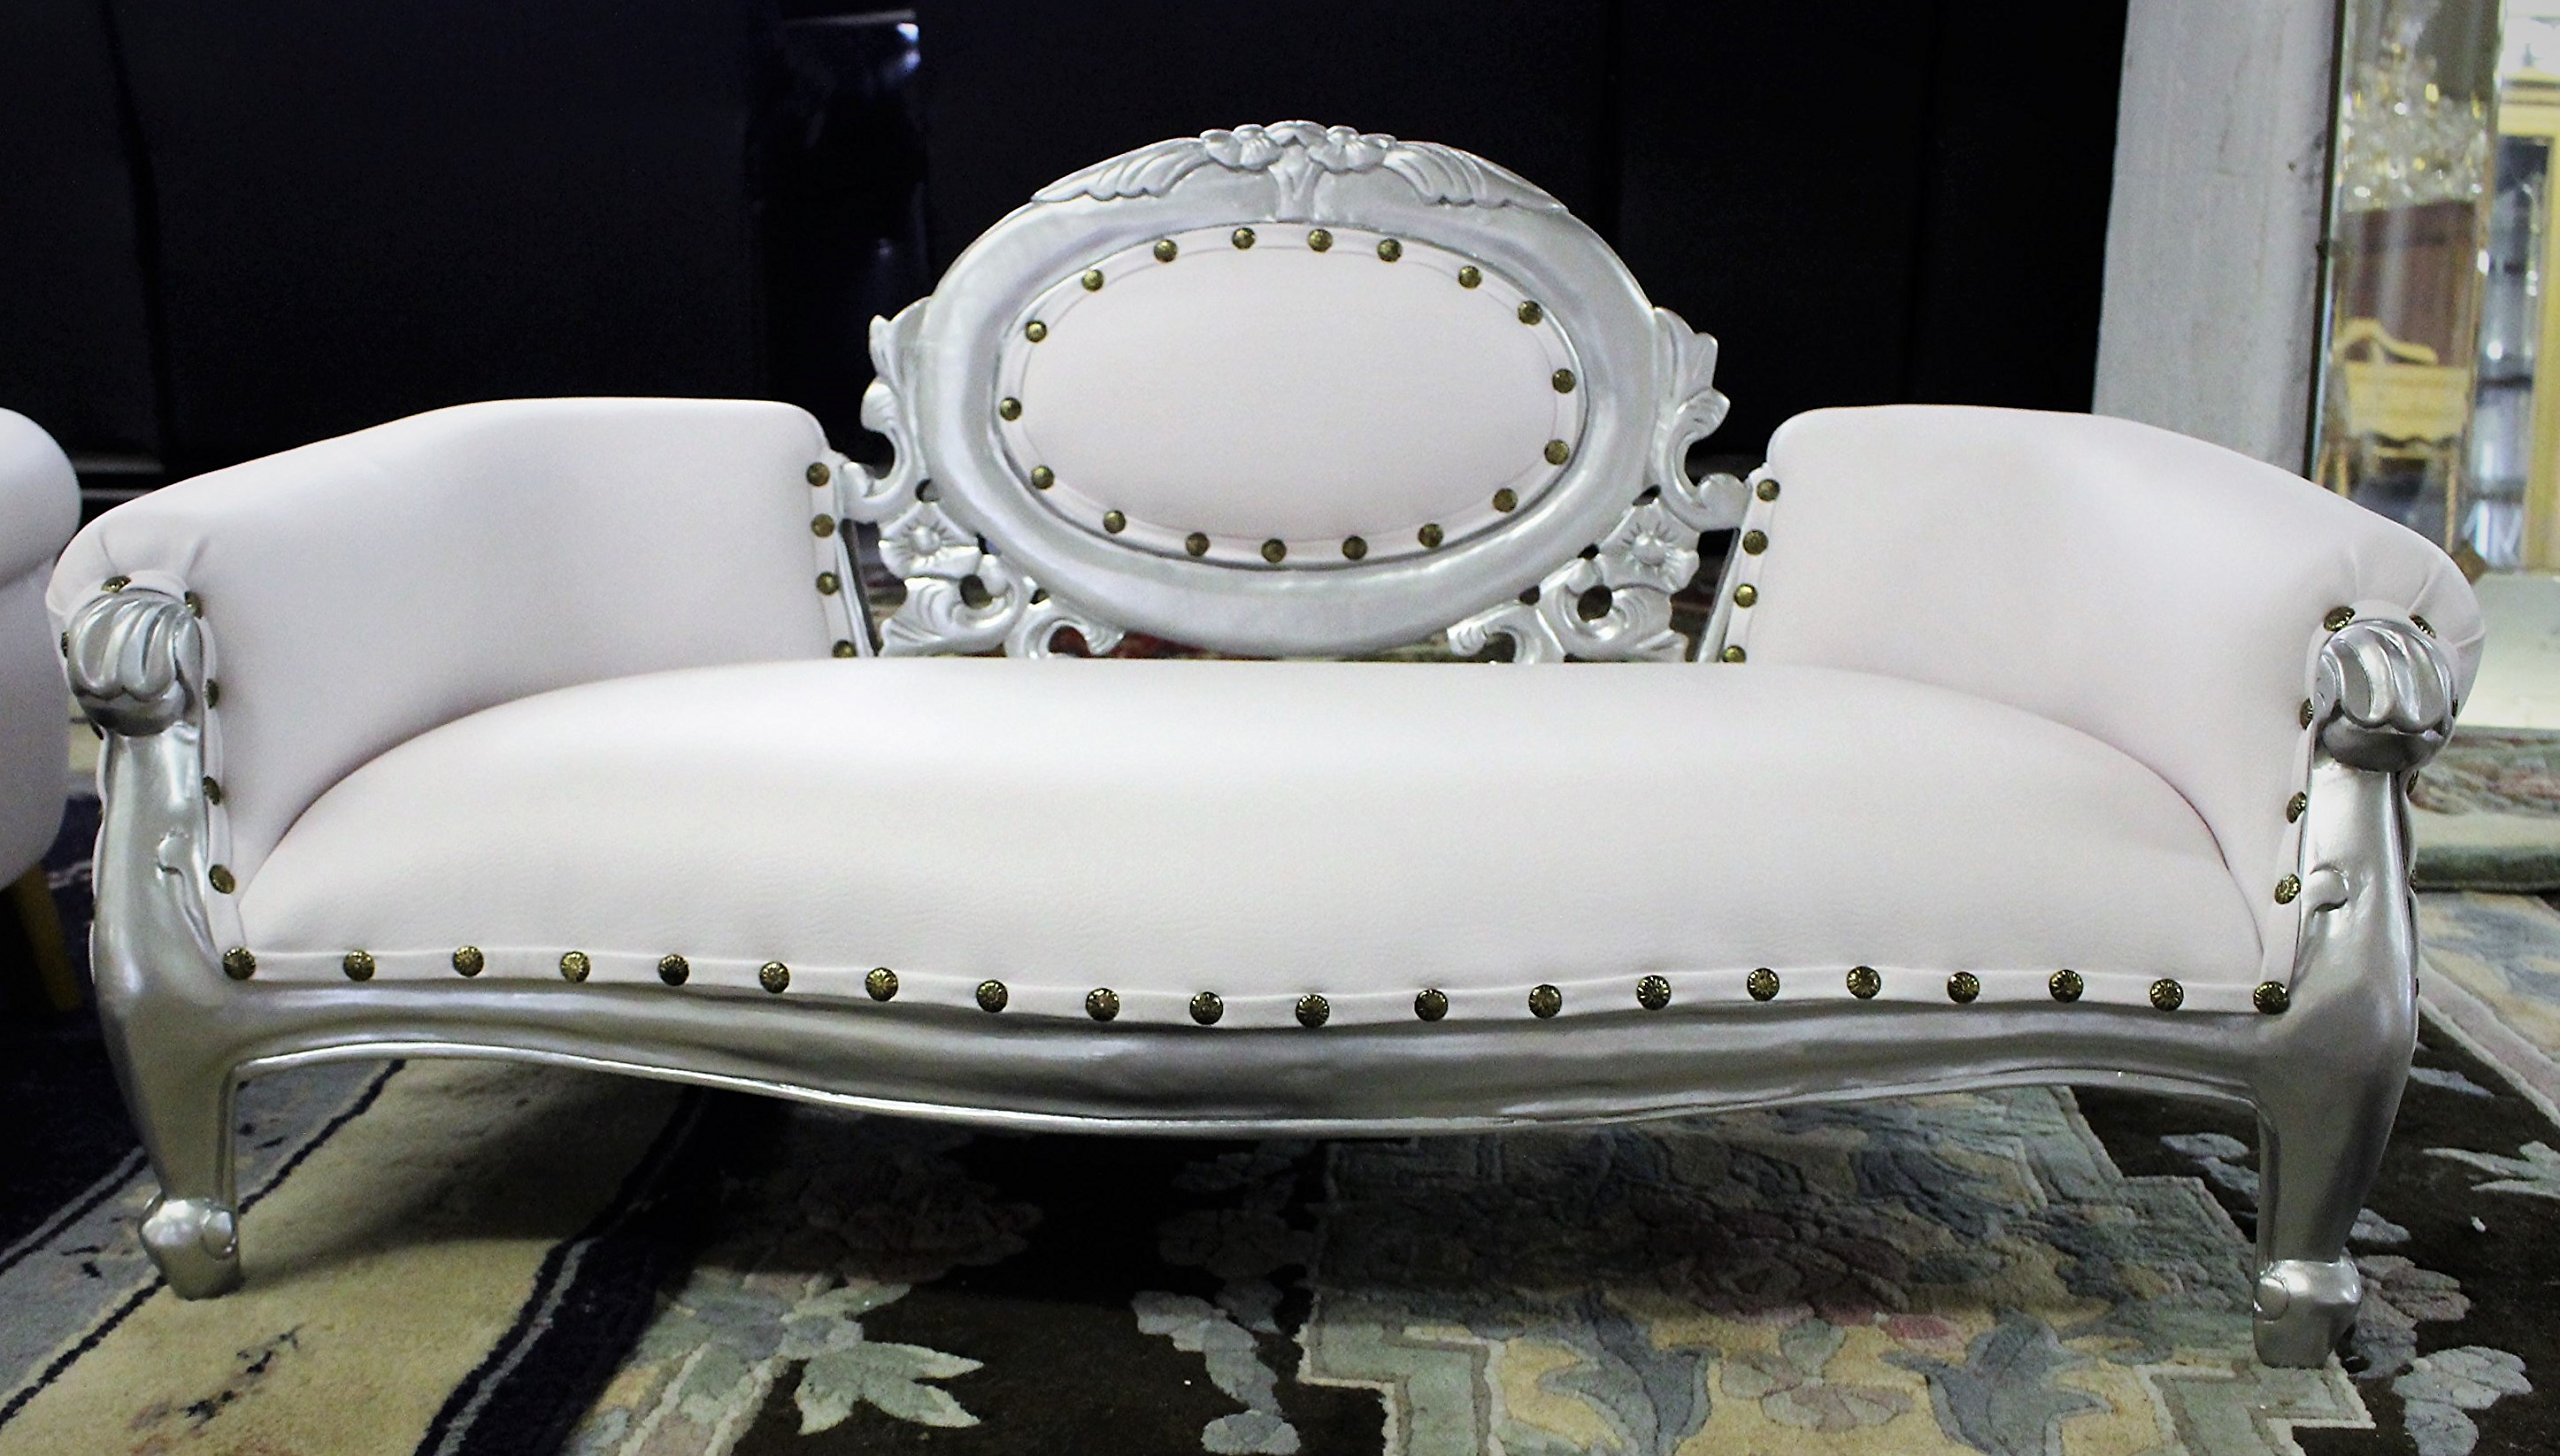 GORGEOUS!!! White Silver Mahogany Mini Baby Chaise Lounge For Kids Parties or Pets Photo Props